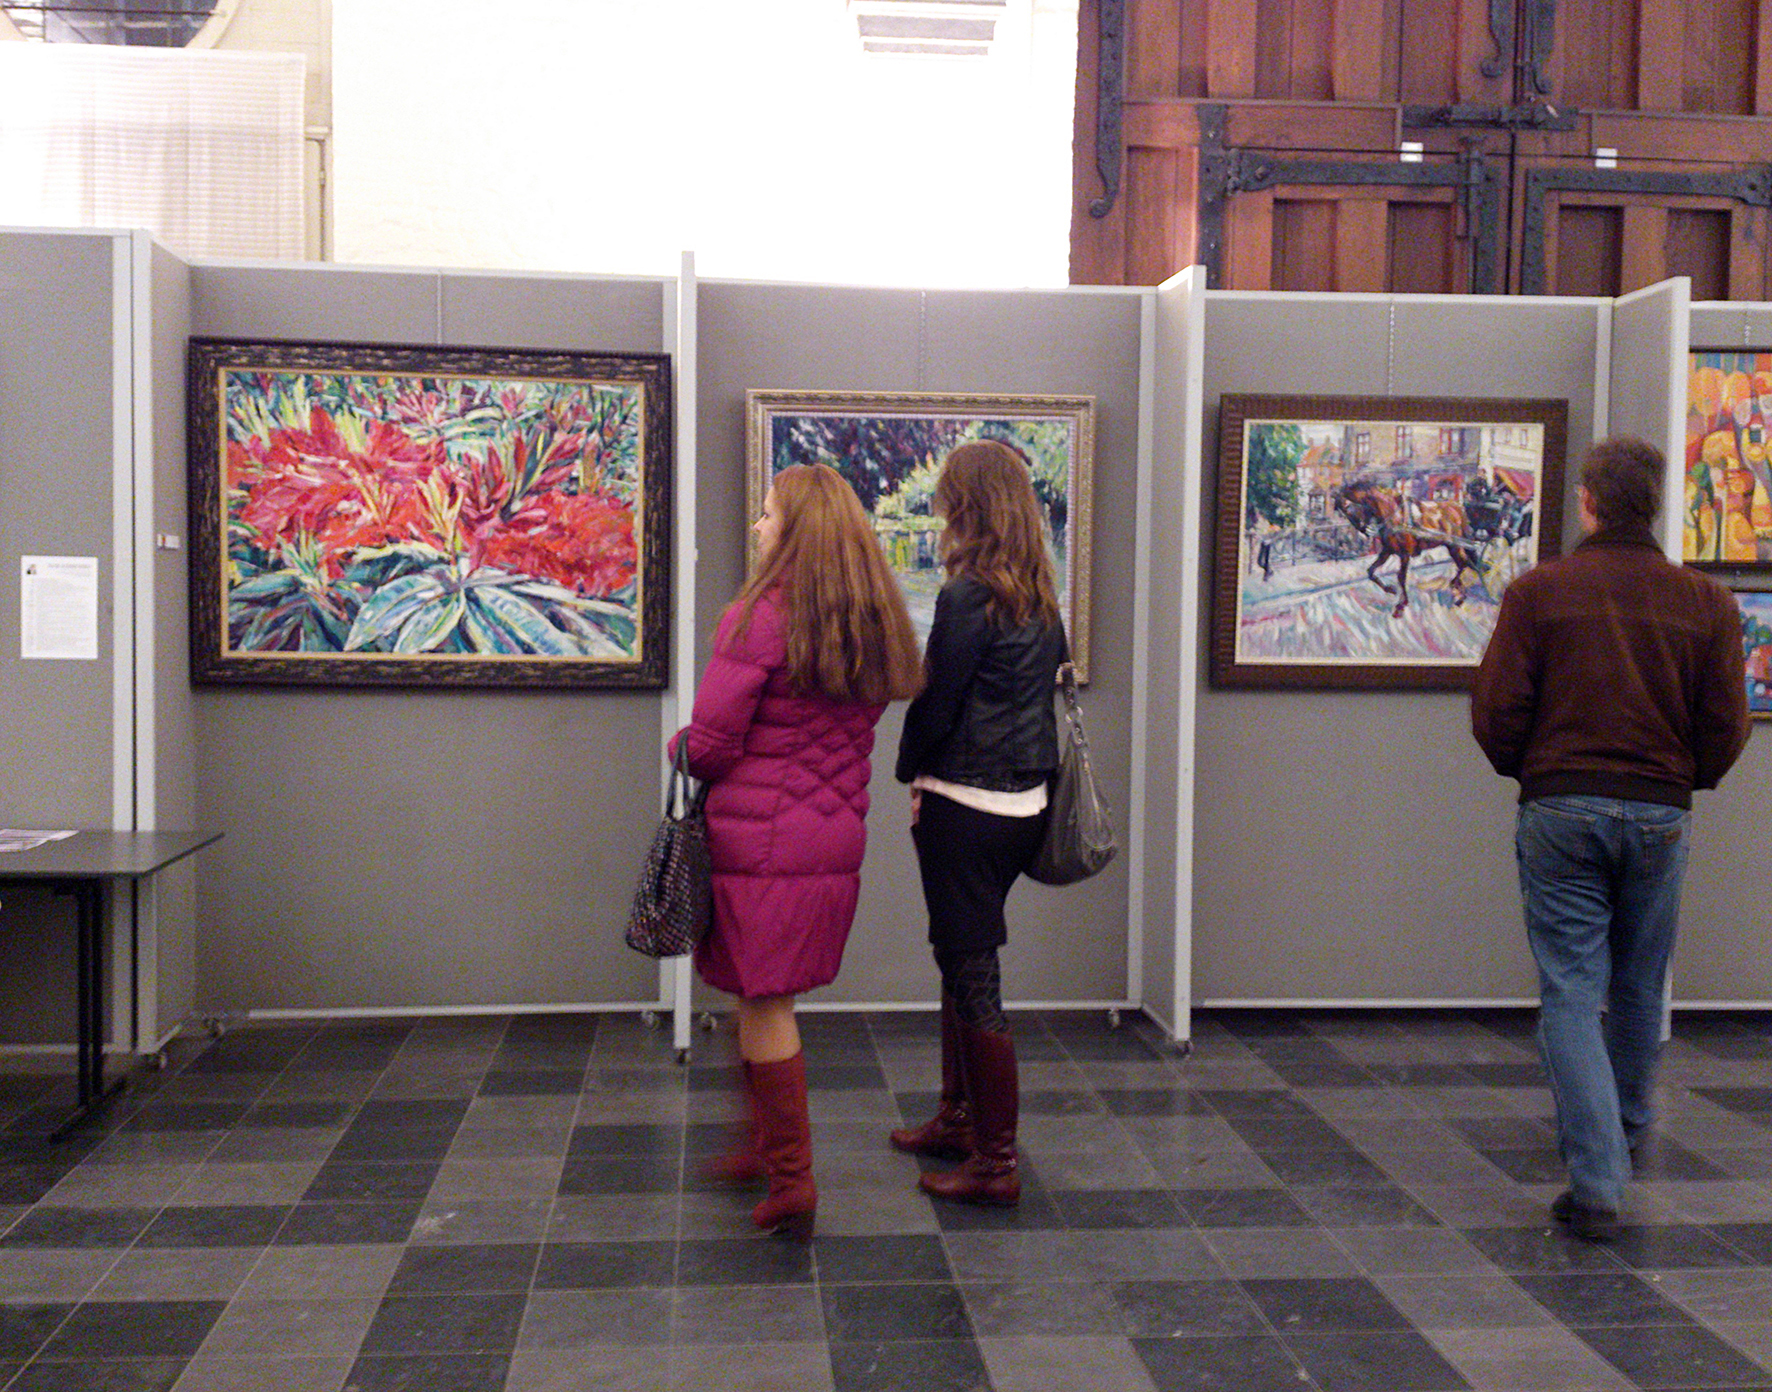 International Art Festival Art Coctail Brugge, Jan Garemijnzaal. Belgium, 13-23.11.2013